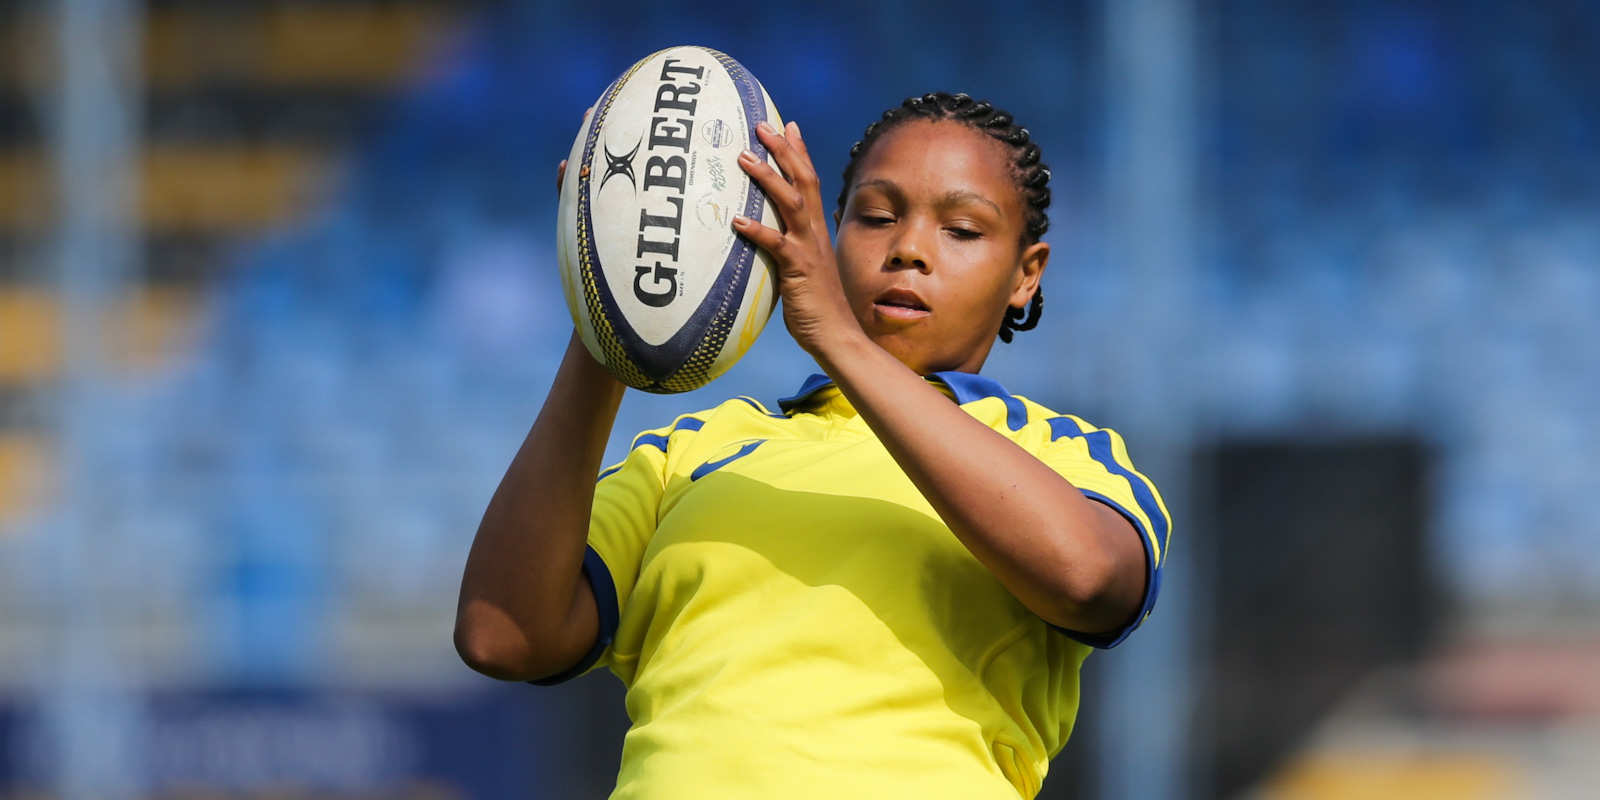 Adapting is key during lockdown - Springbok Women's coach - Sports Leo